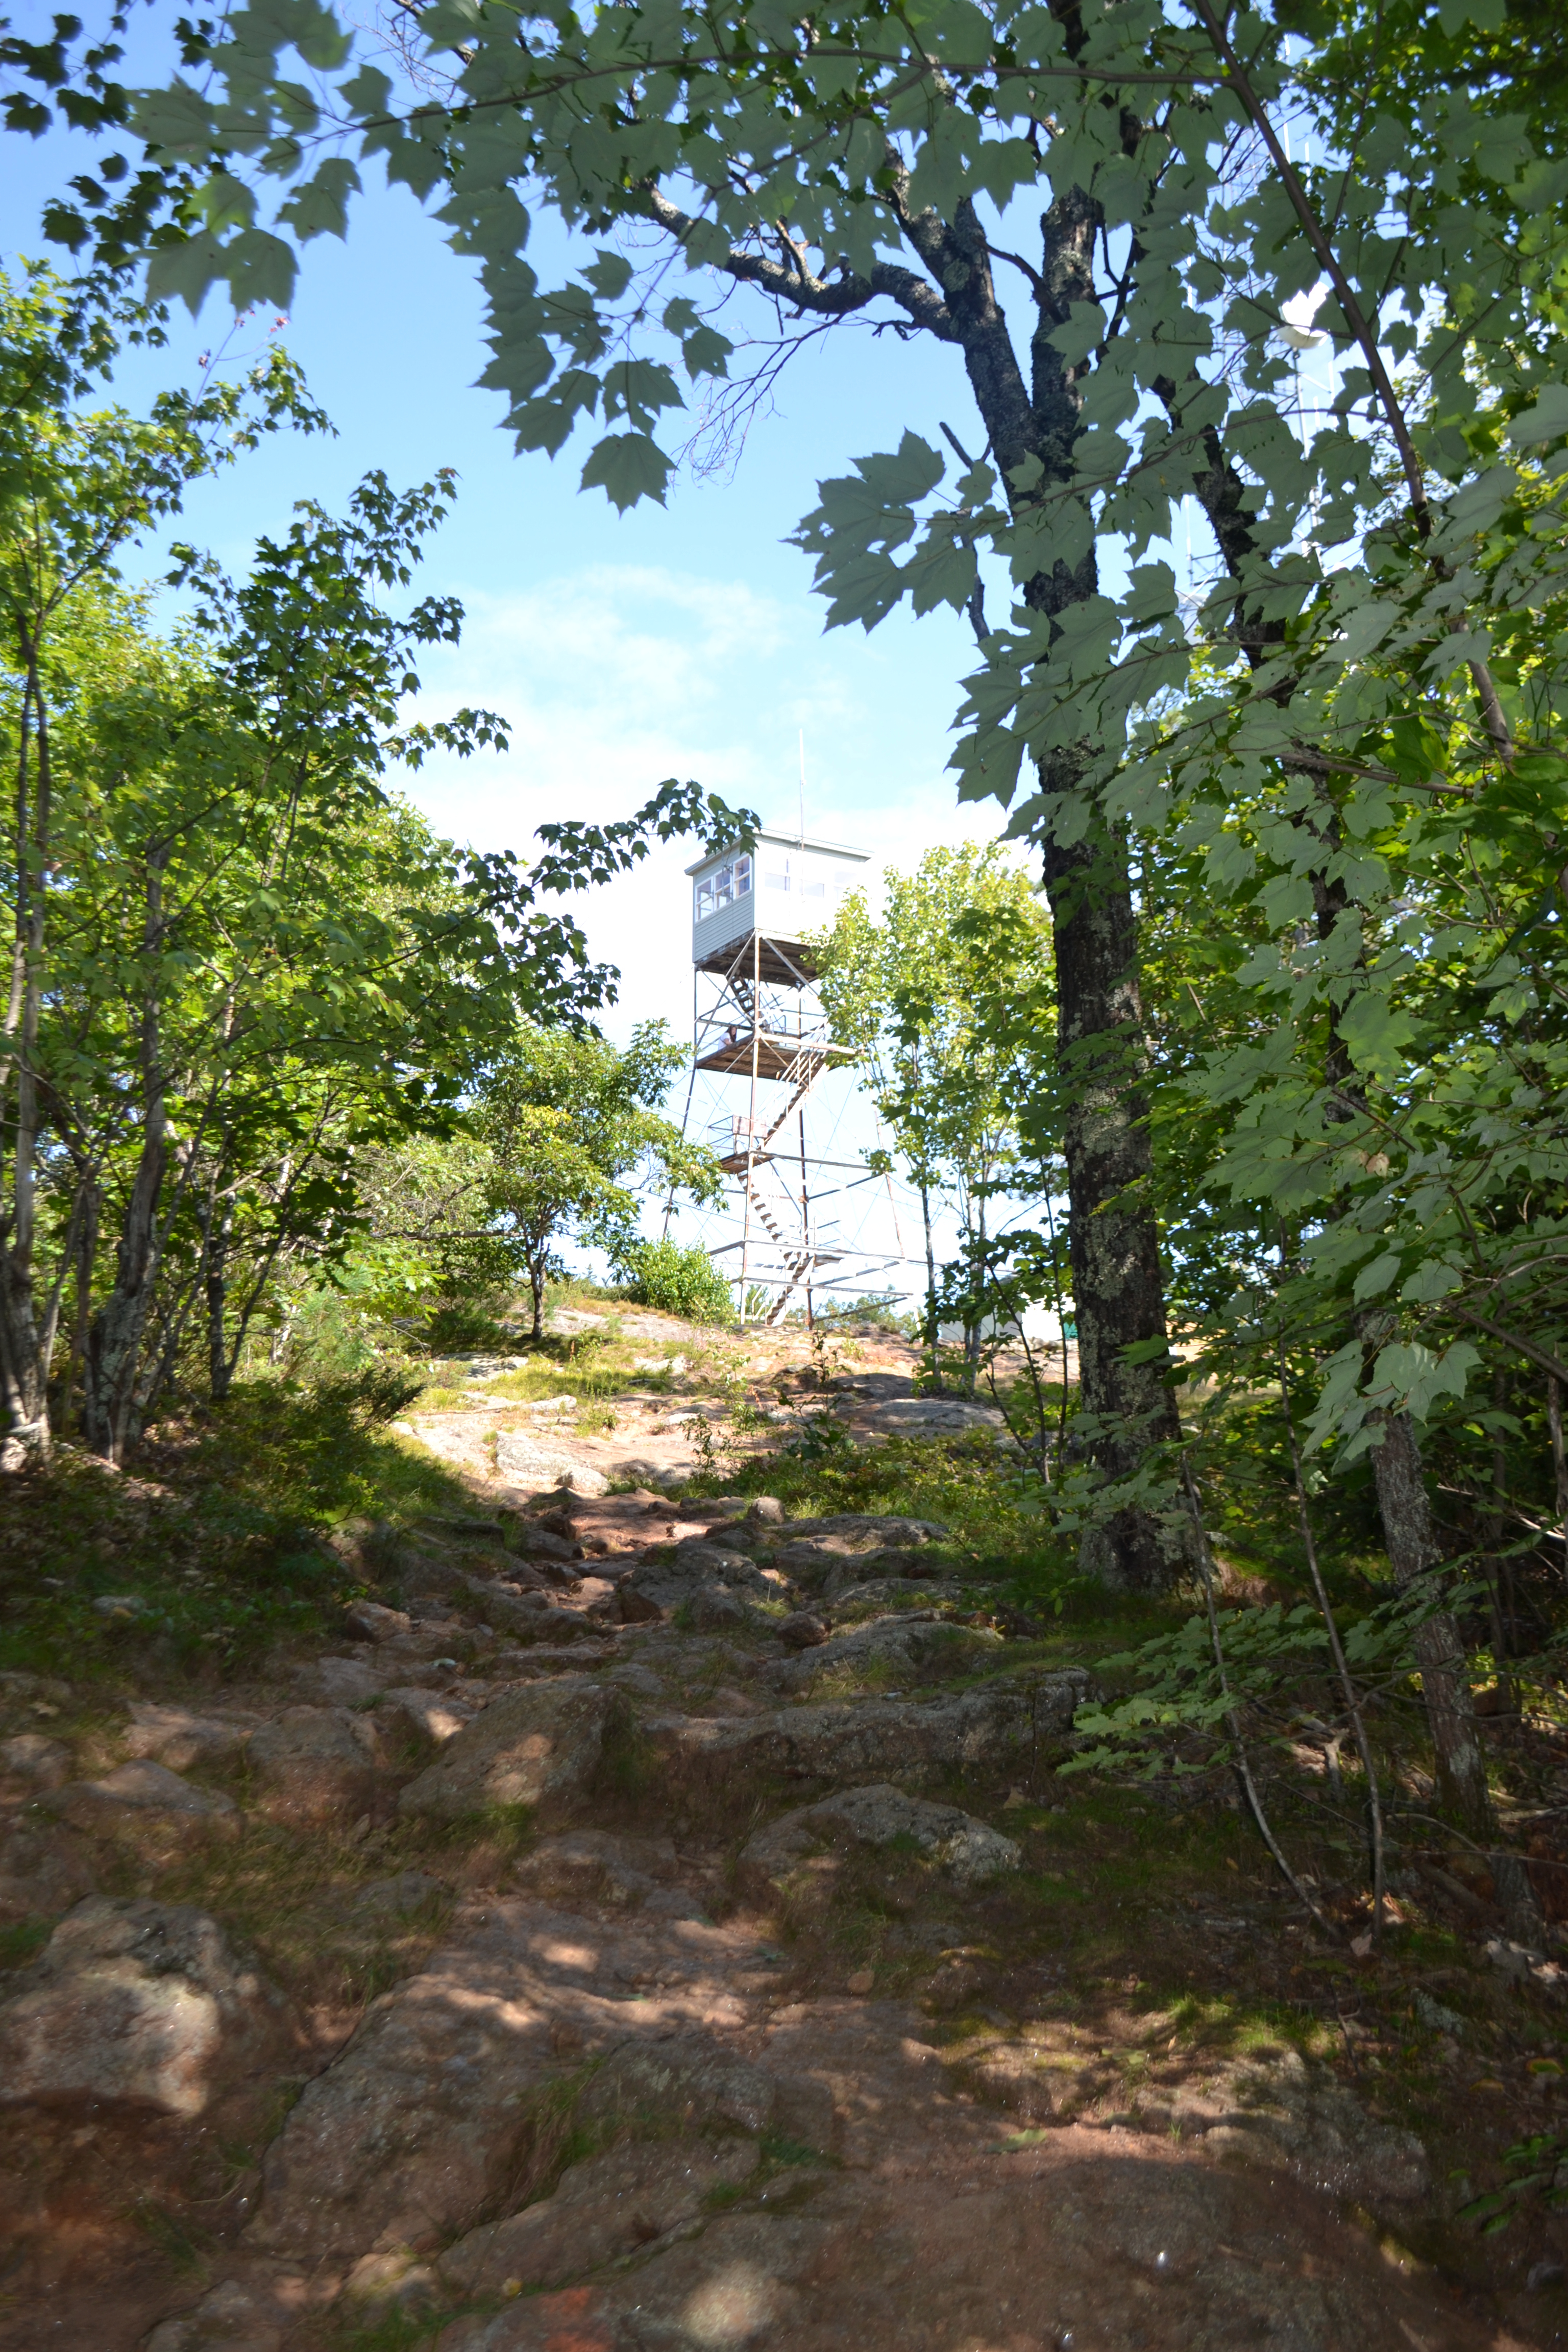 On the lookout: Fire towers in N.H. worth a visit